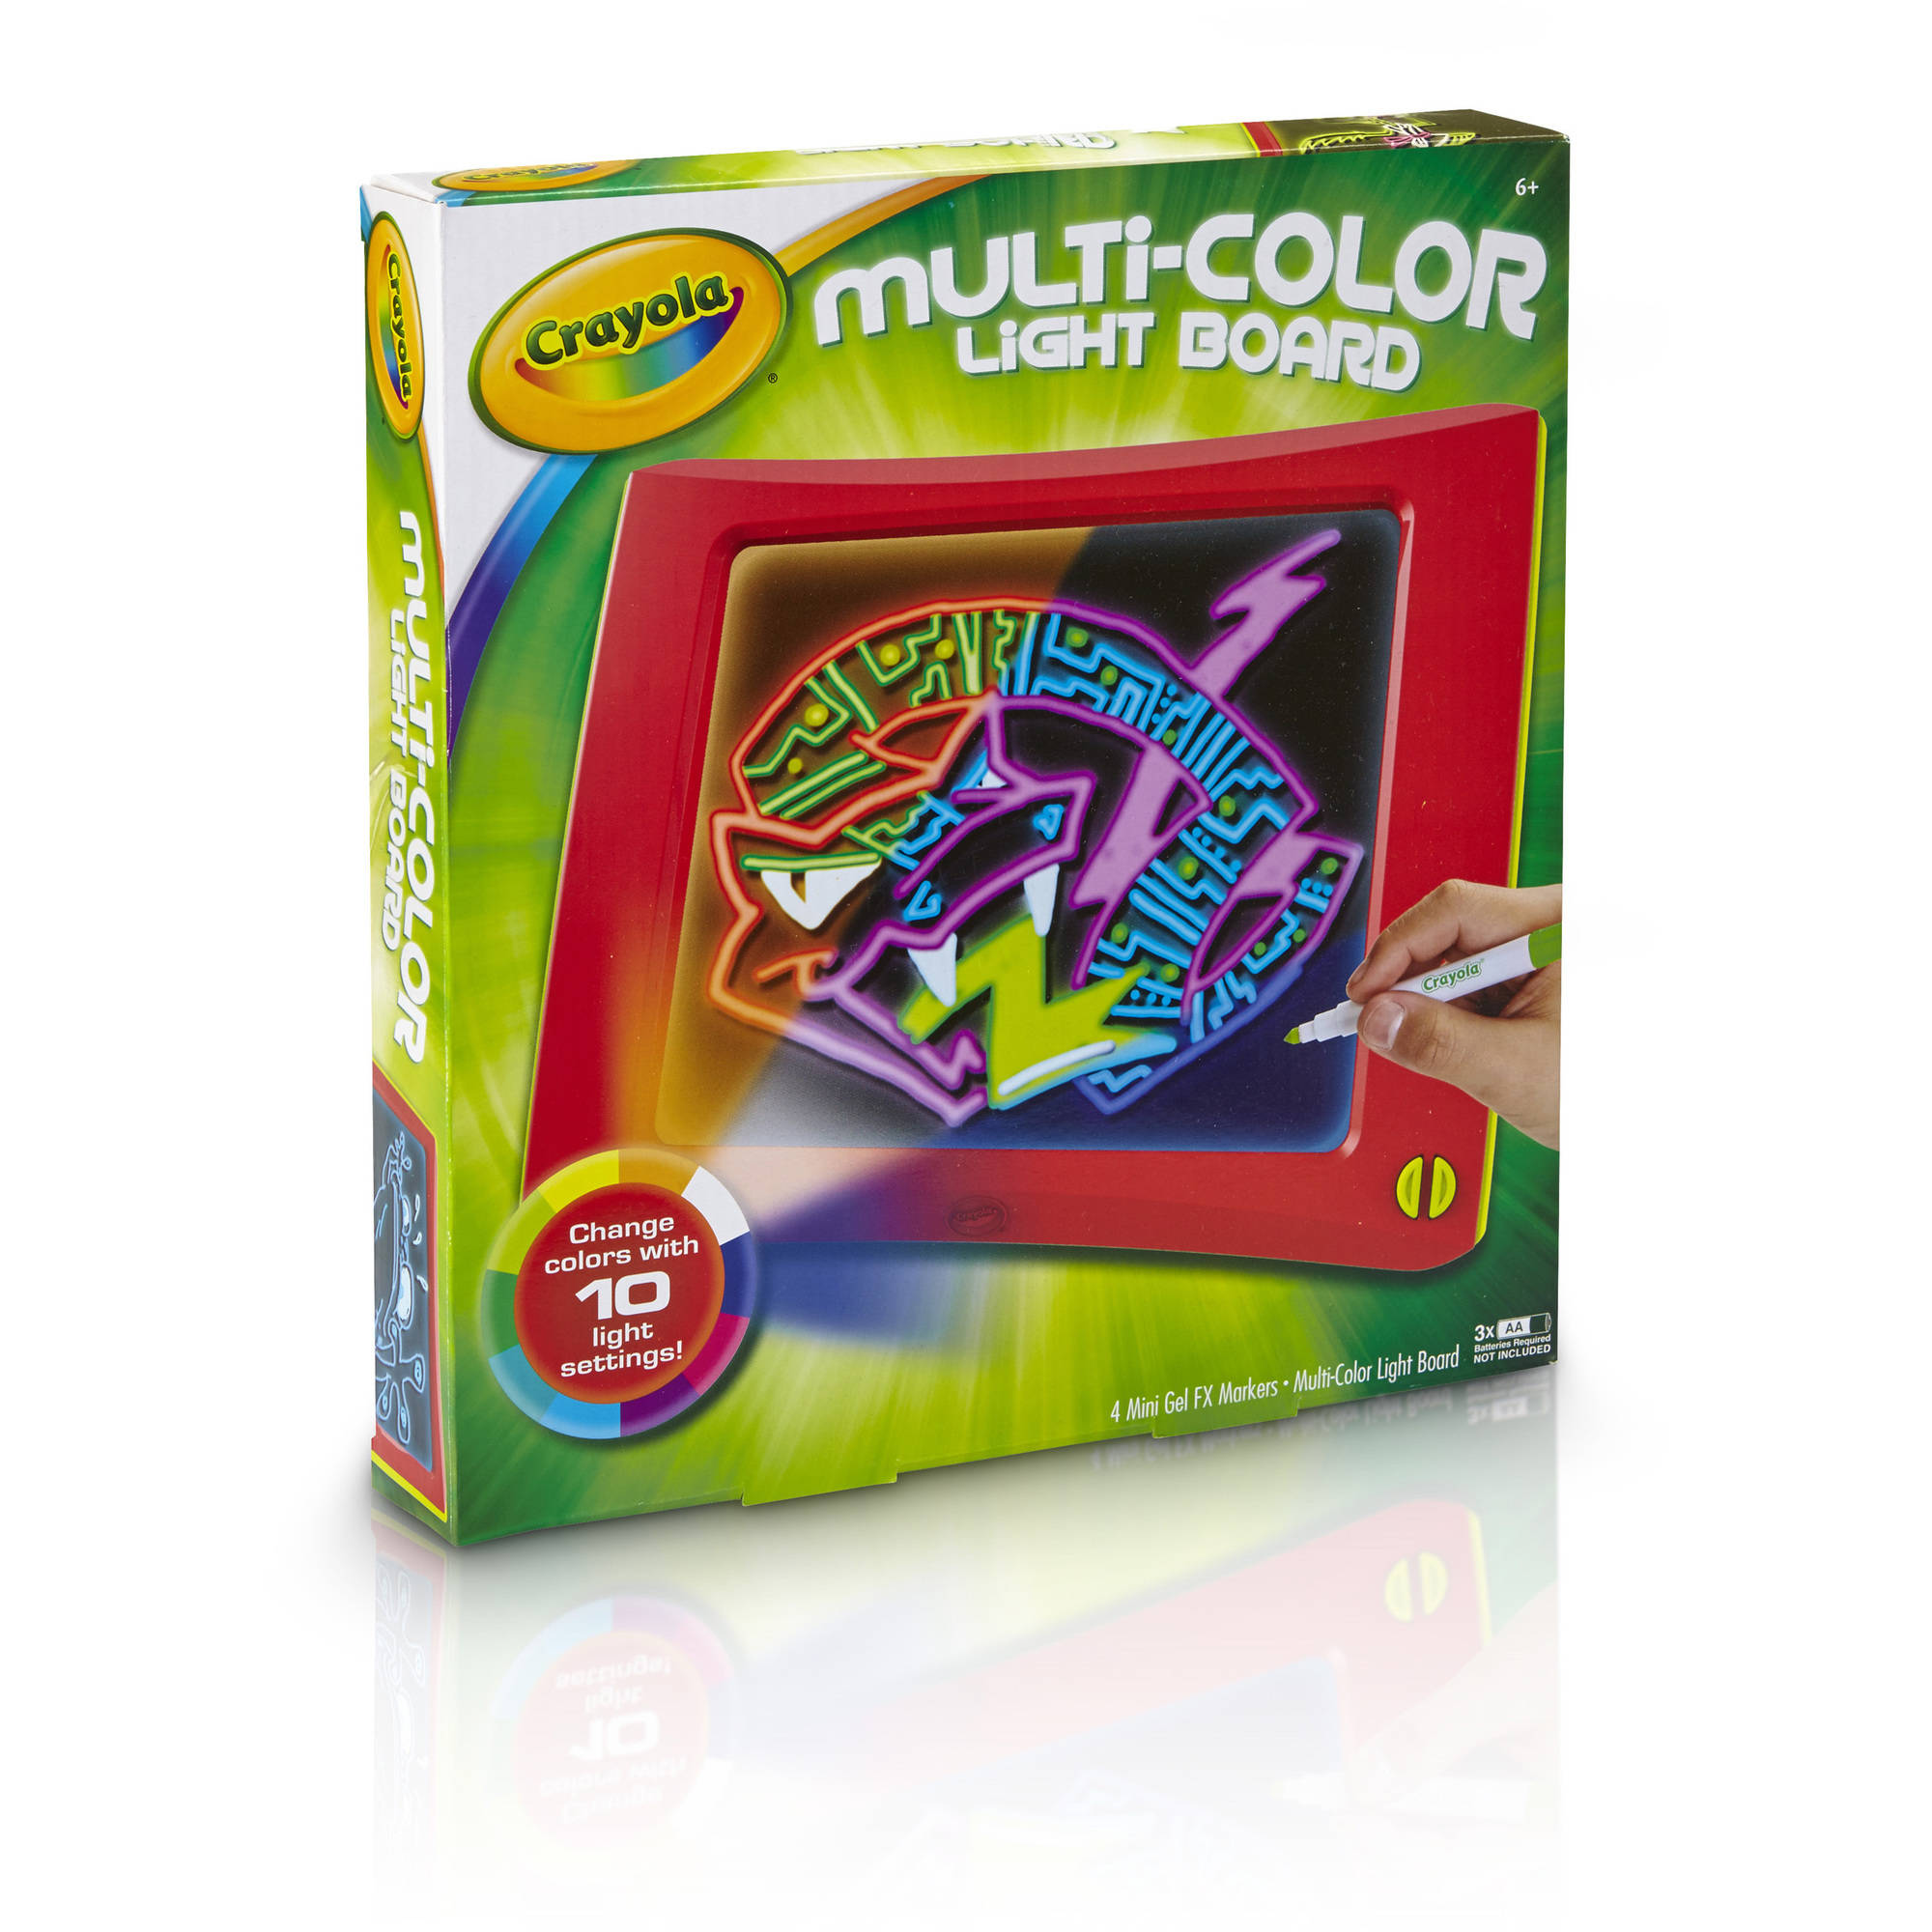 Crayola Multi-Color Light Board with Gel FX Markers